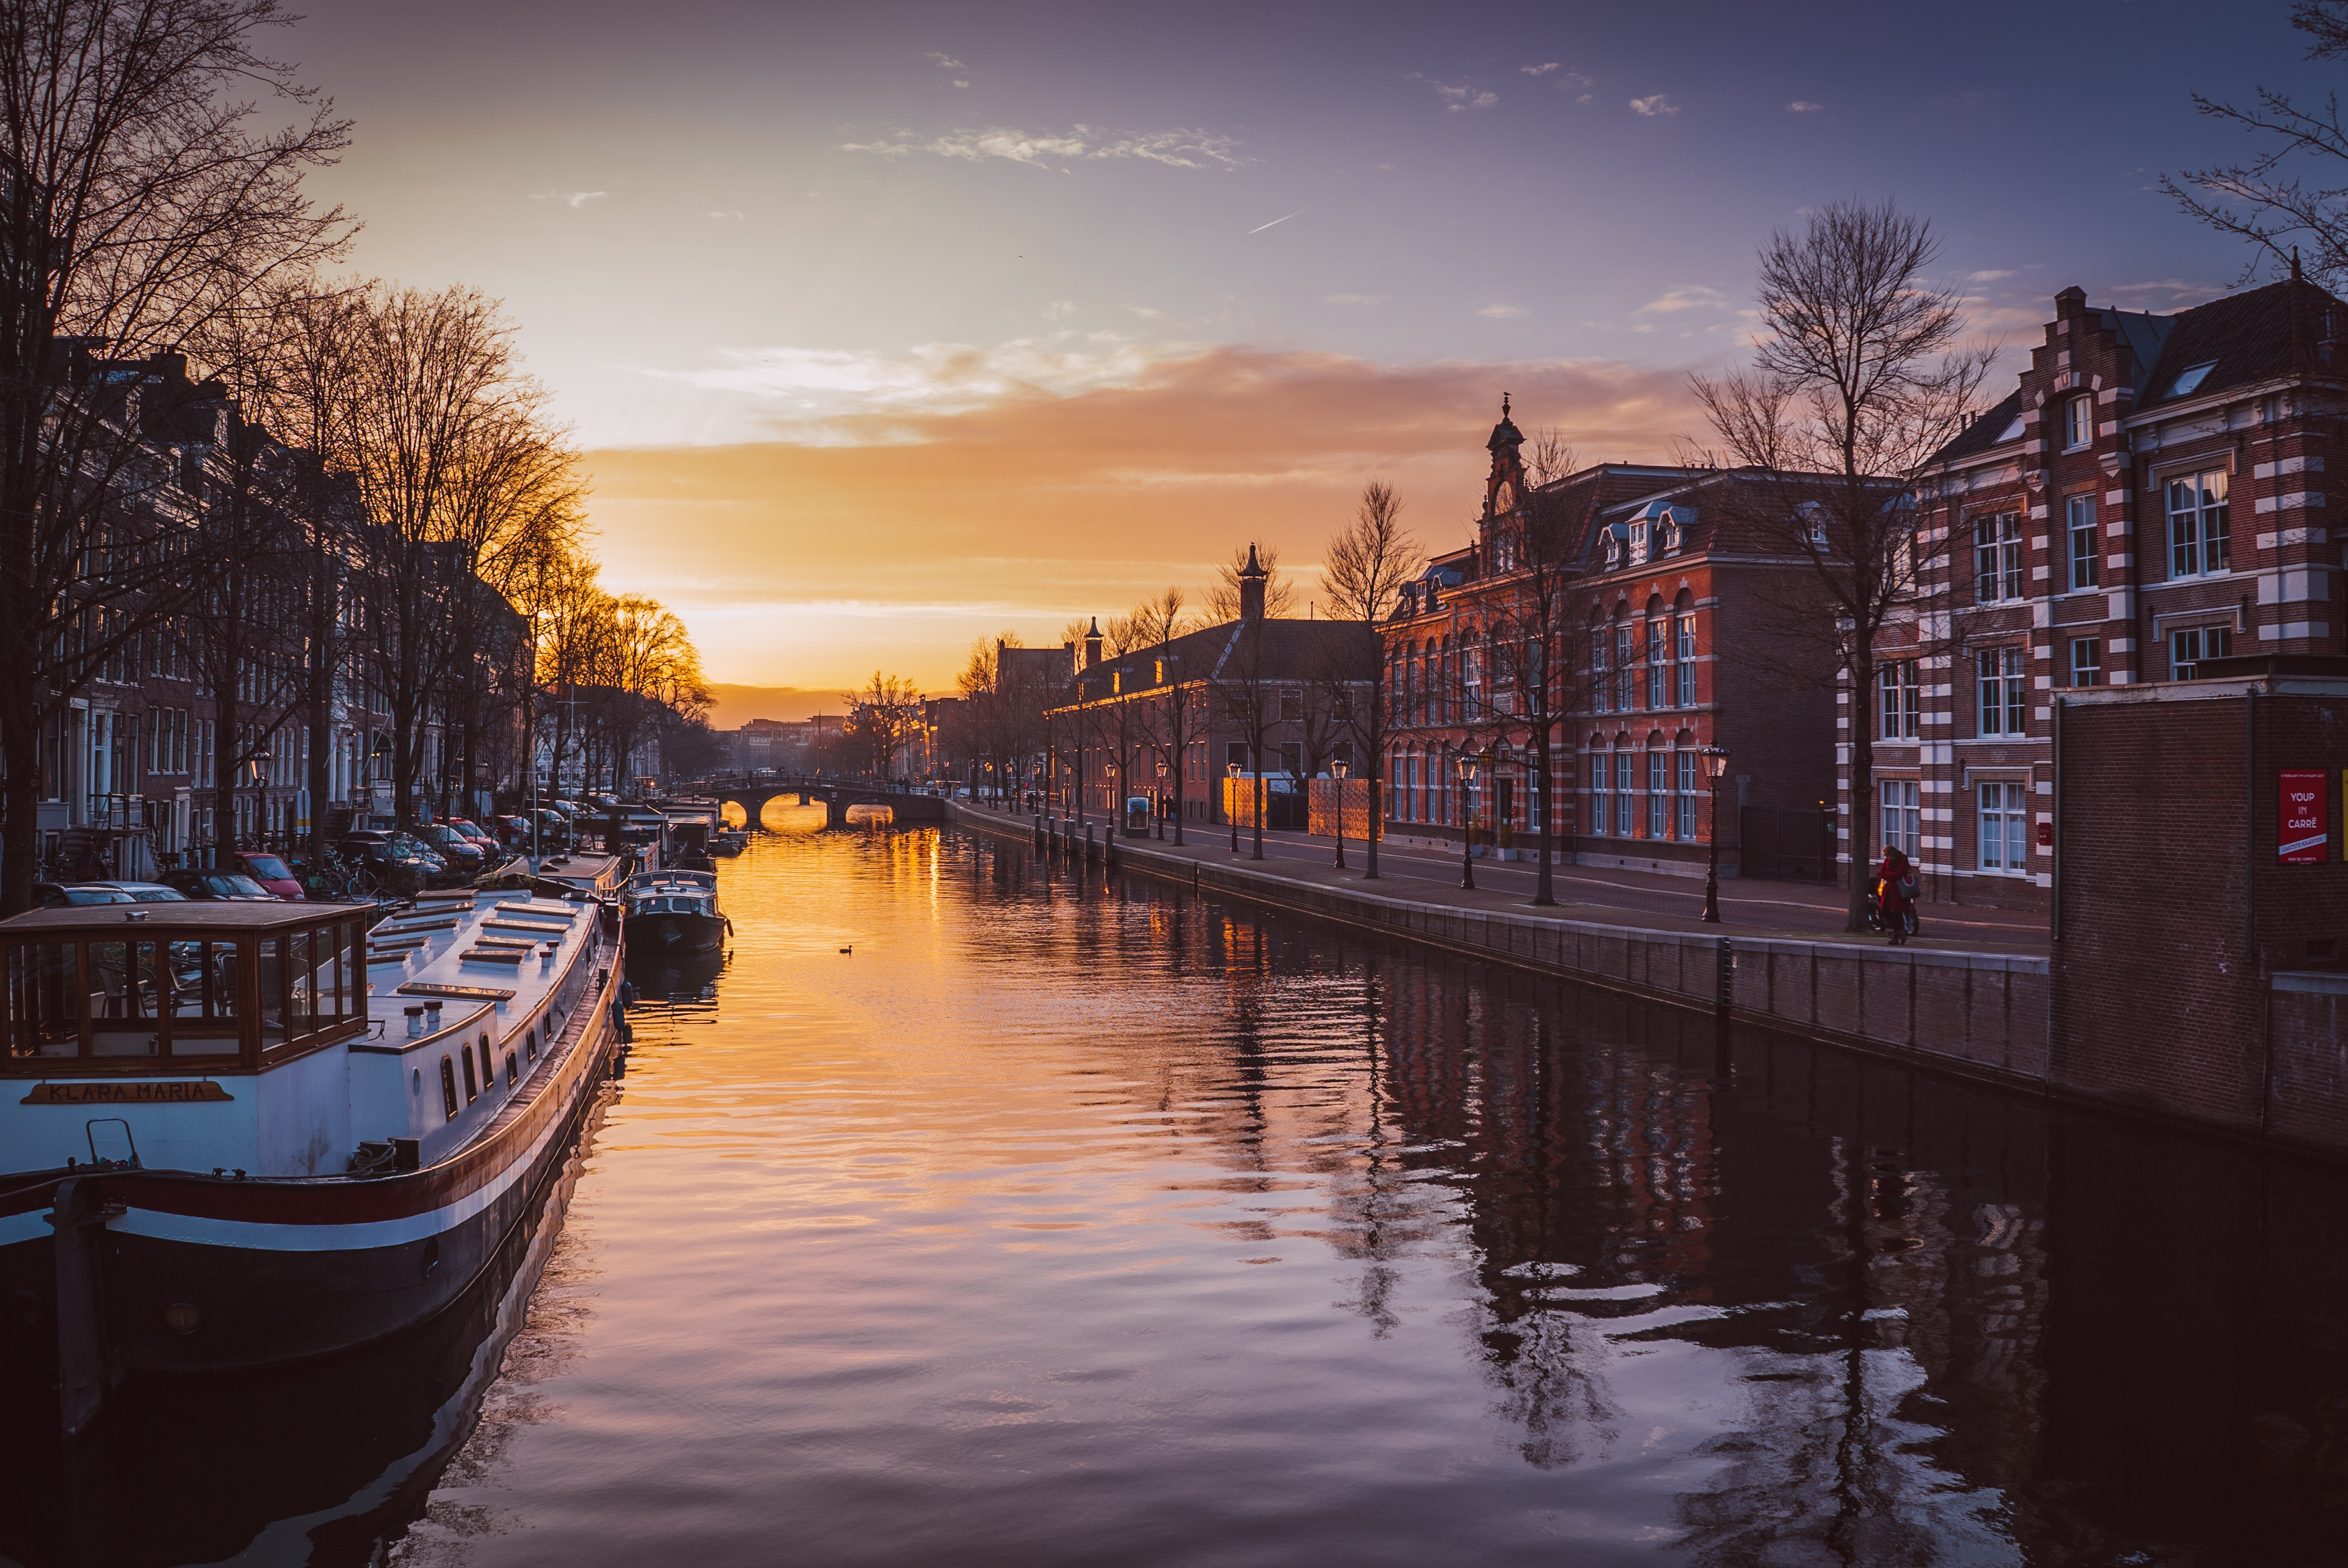 Amsterdam with view to its canals